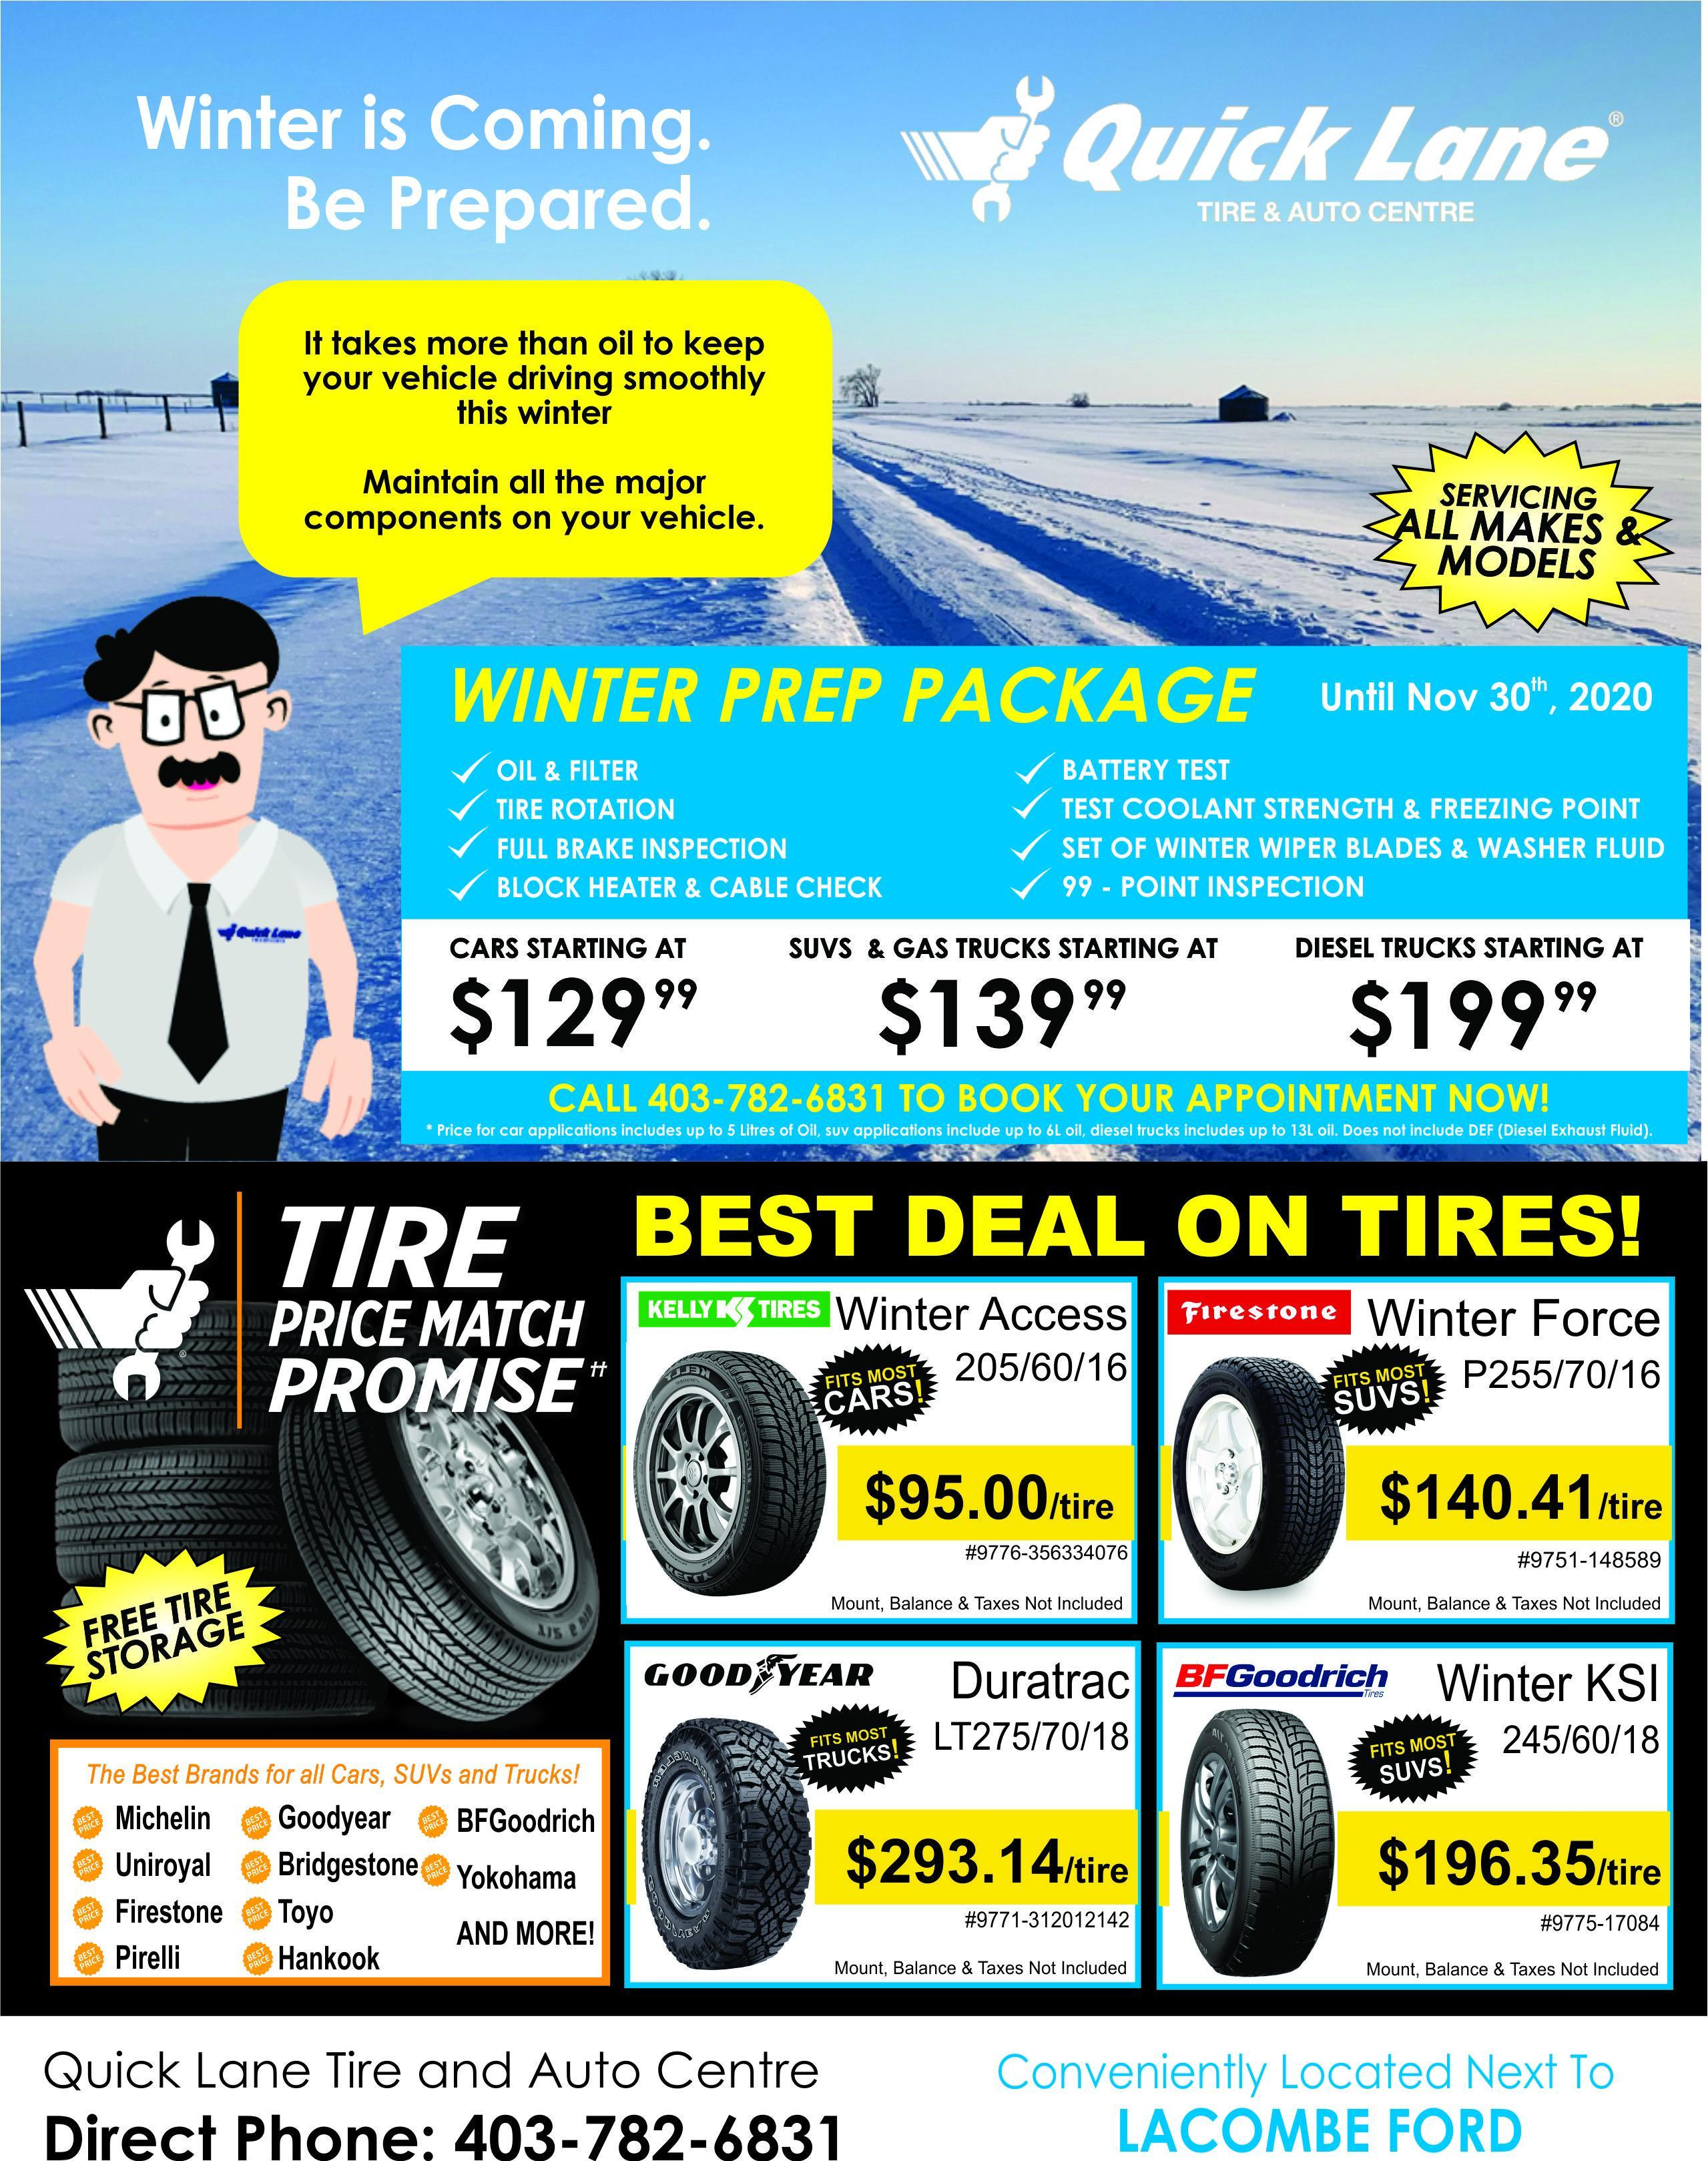 lacombe quick lane tire and auto centre winter prep package